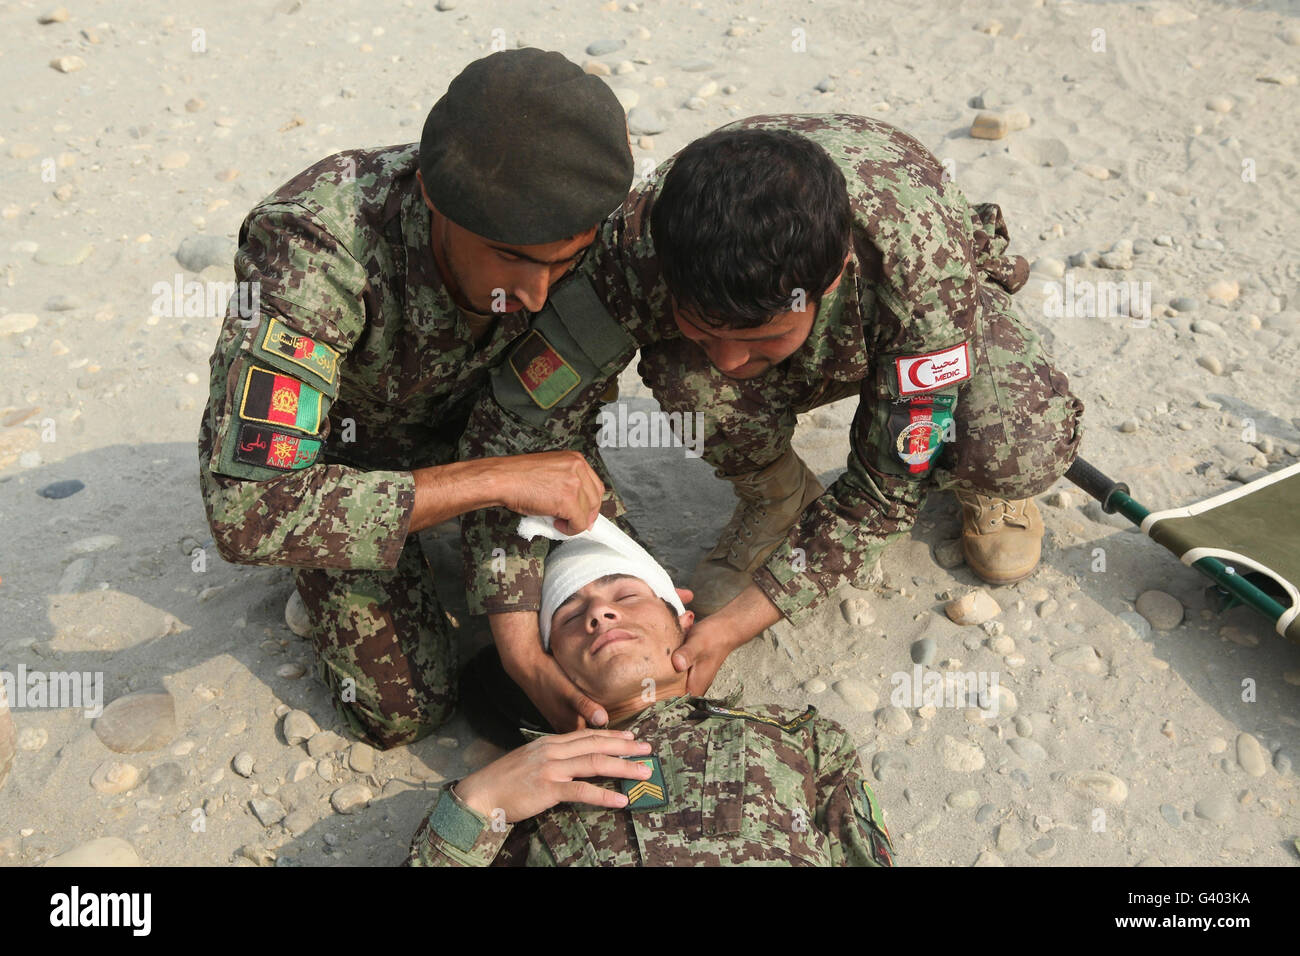 Afghan National Army soldiers put a head bandage on a fellow soldier. - Stock Image